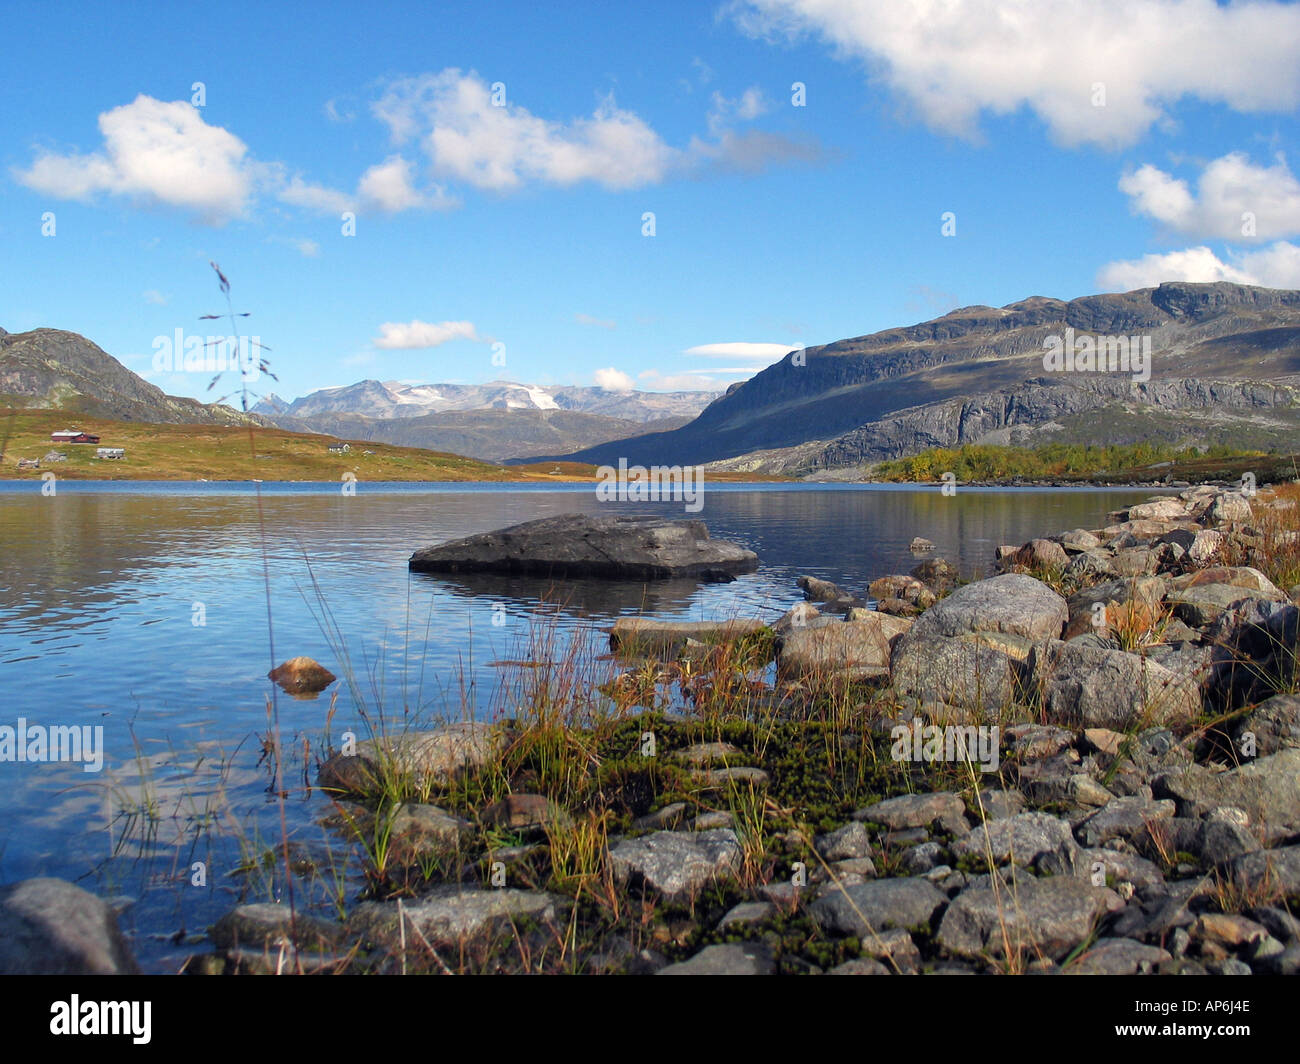 Beautifull lake on Slettefjell during Indian summer, Jotunheimen, Norway - Stock Image